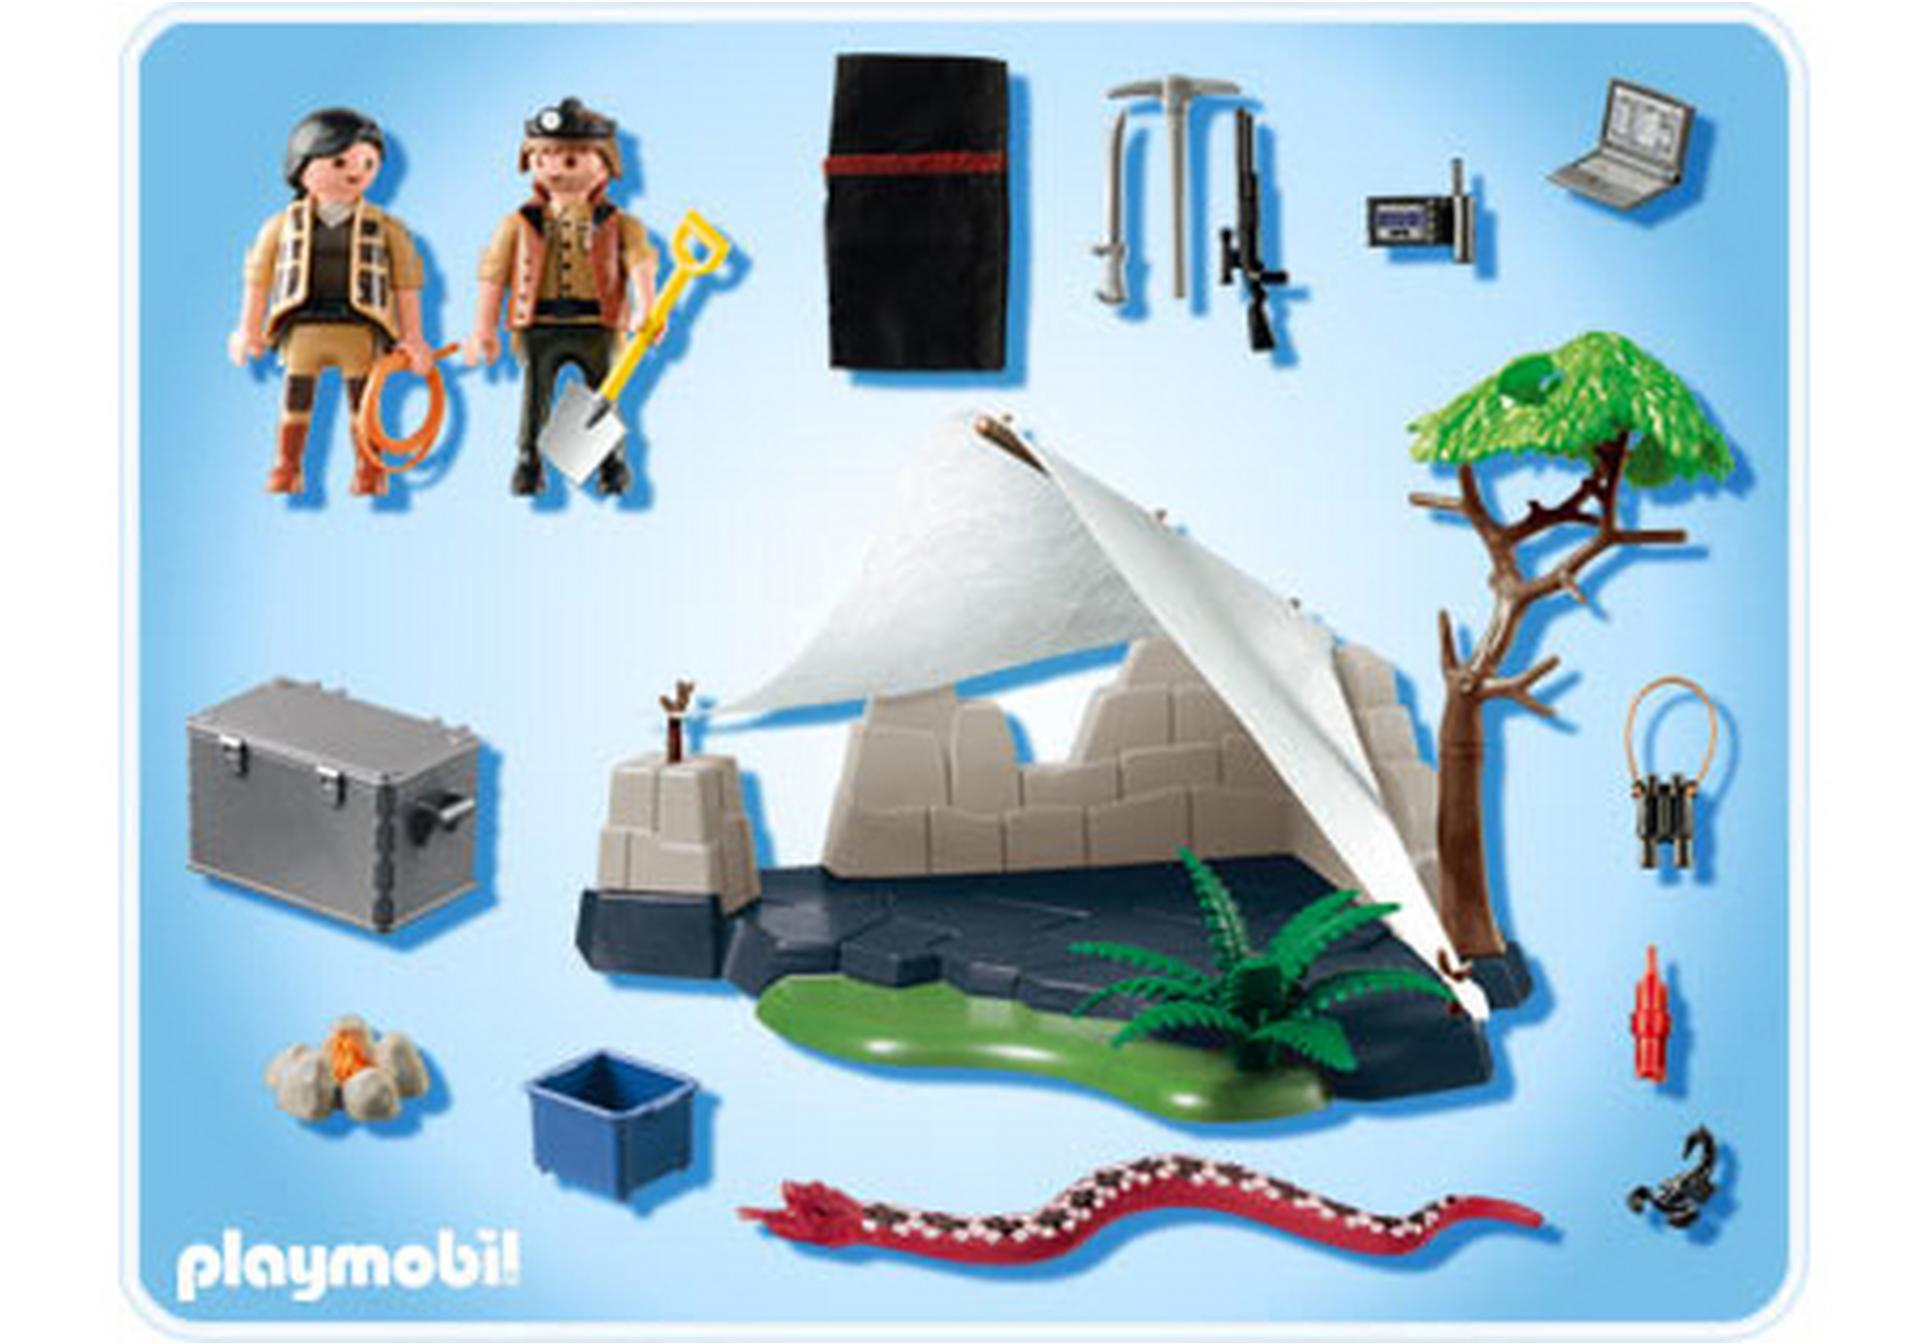 Campement des aventuriers 4843 a playmobil france for Playmobil segunda mano